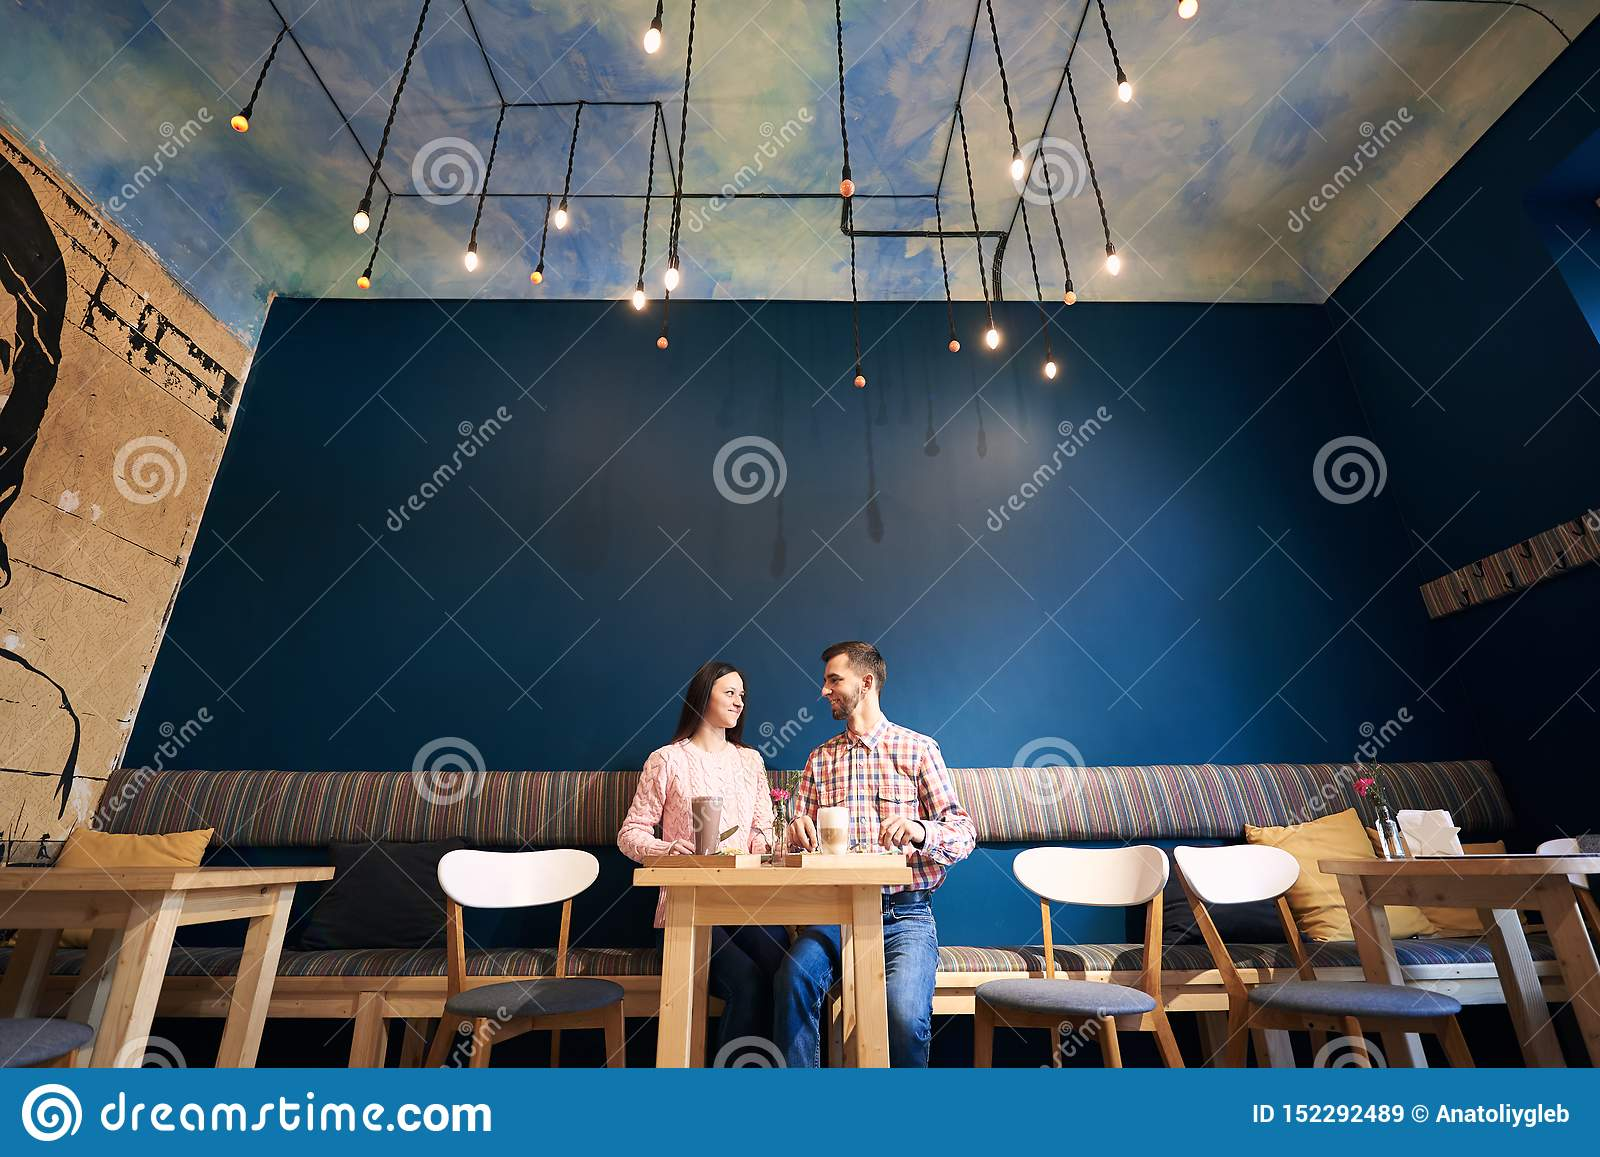 Two people in atmospheric cafe enjoying time spending with each other, having dinner, talking in cafe. Blue background.